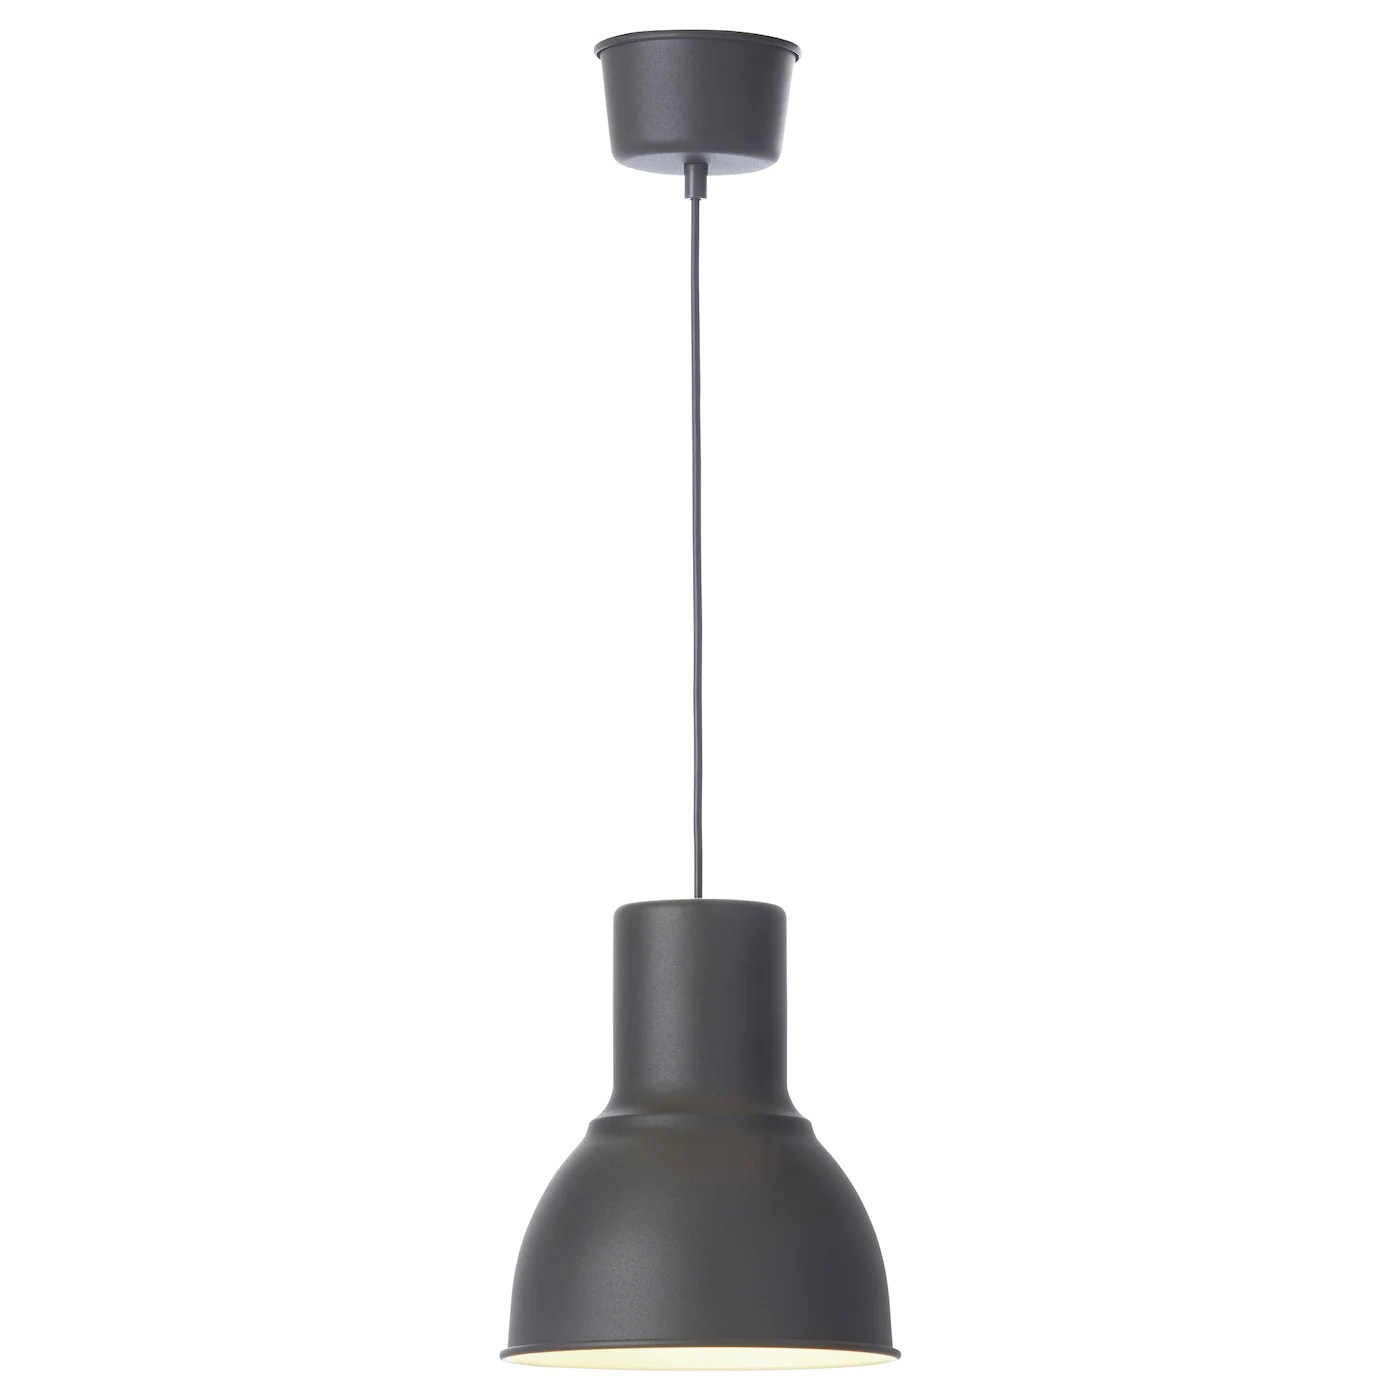 Ikea Light Pendant Hektar Pendant Lamp Dark Grey 22 Cm Ikea